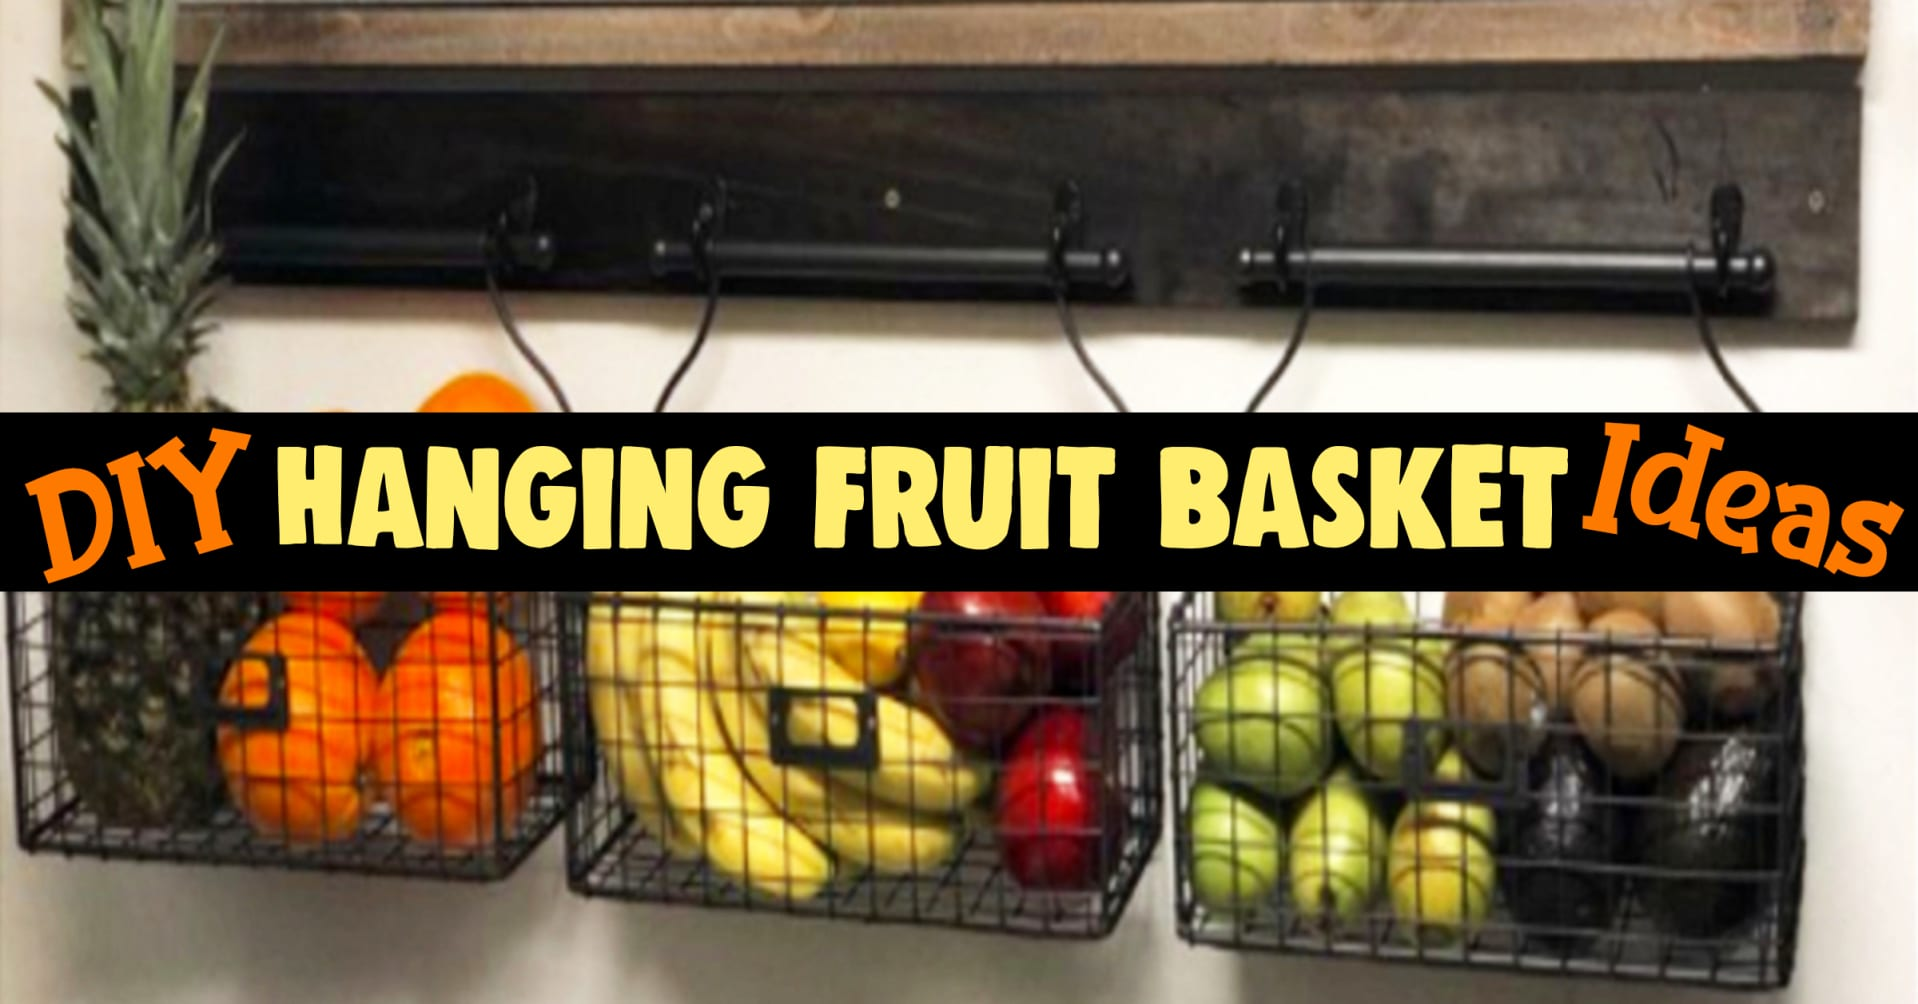 Hanging fruit basket ideas - DIY kitchen storage with hanging fruit baskets and wall0mounted produce baskets for all your fruits and vegetables - lovely famrhouse kitchen decorating ideas on a budget